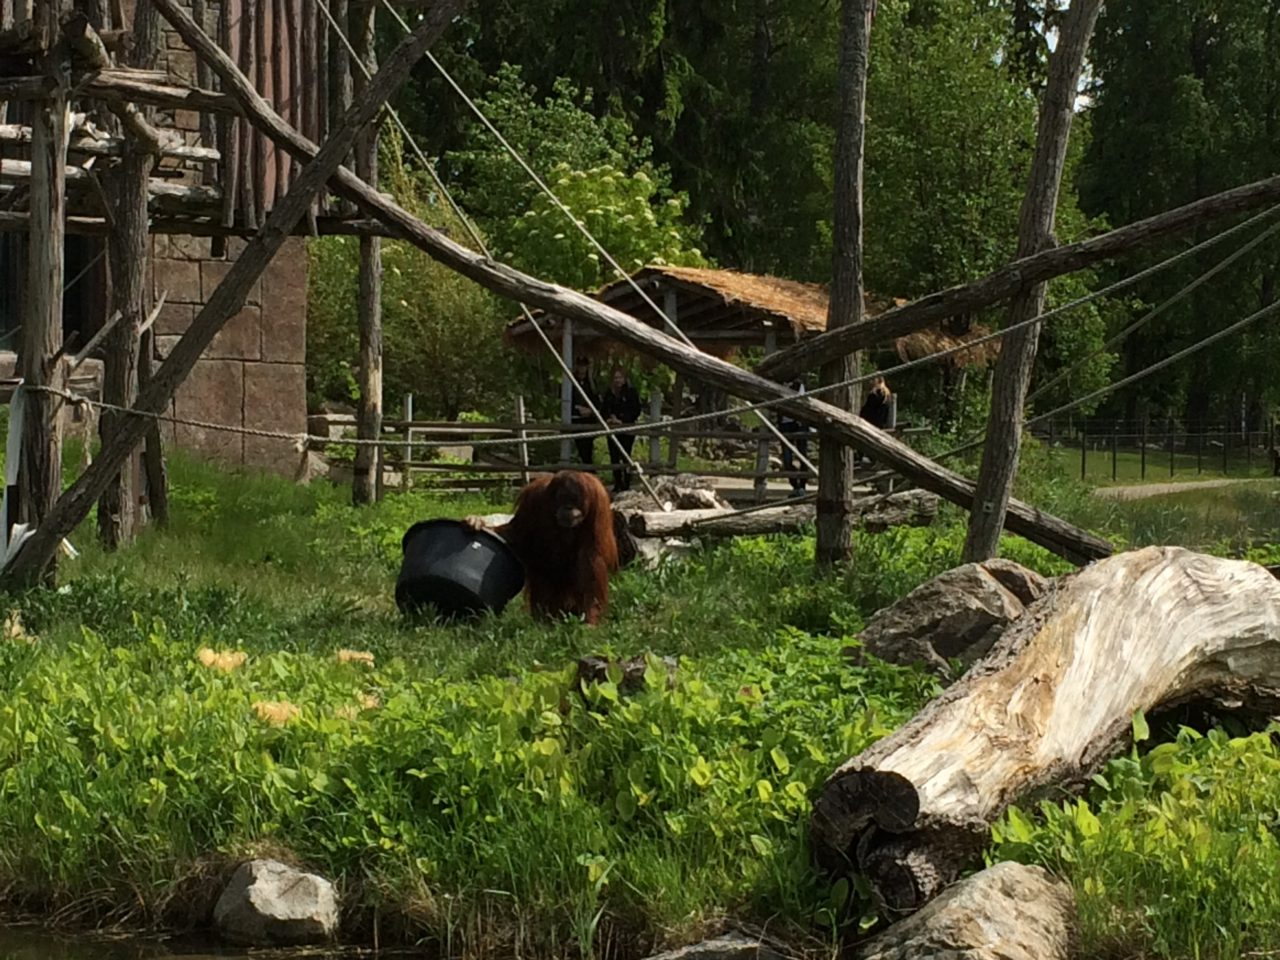 Orangutan In A Zoo In Sweden In The Summer Outdoors In The Green